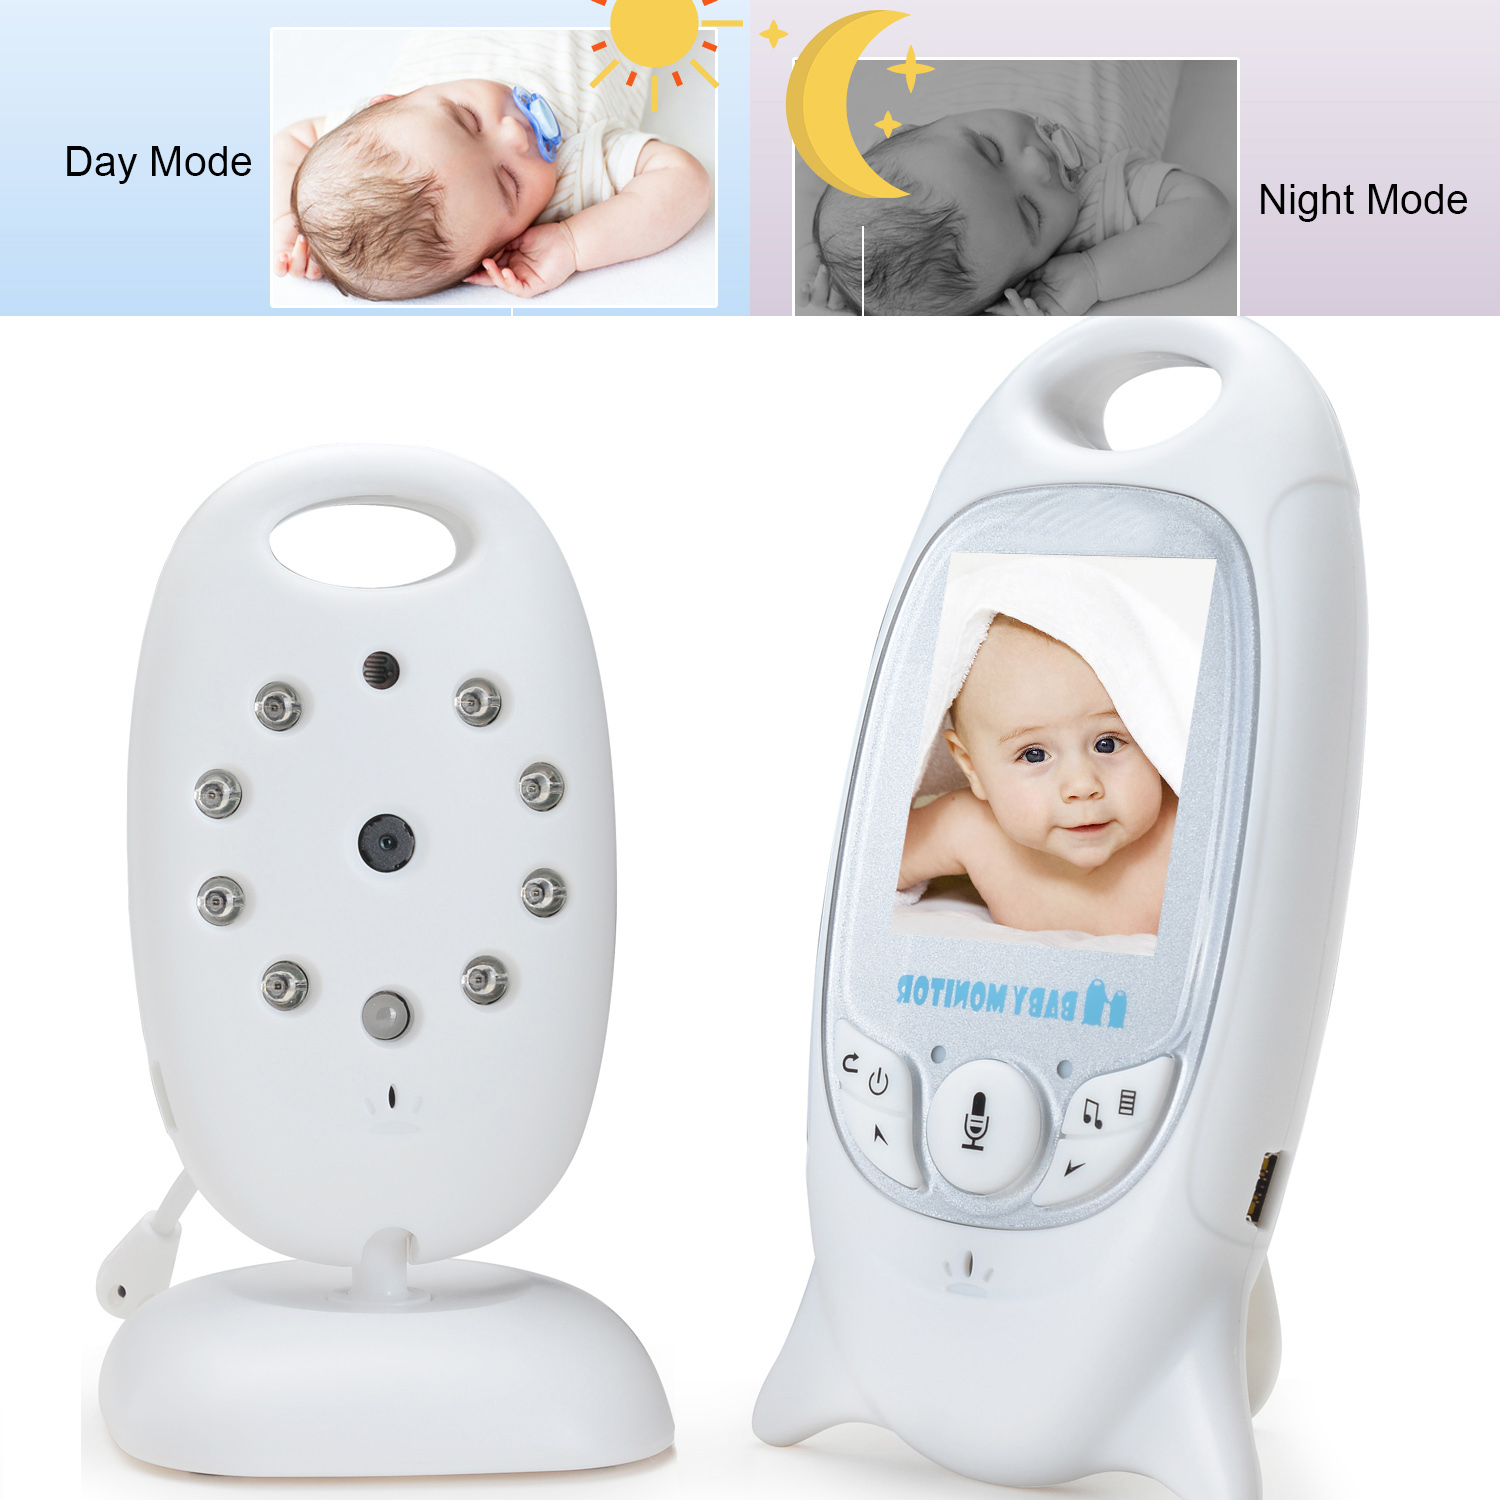 Baby Monitor Video Baby Infant Monitor Wireless Digital Camera with Night Vision Two Way Talk Long Range on sale